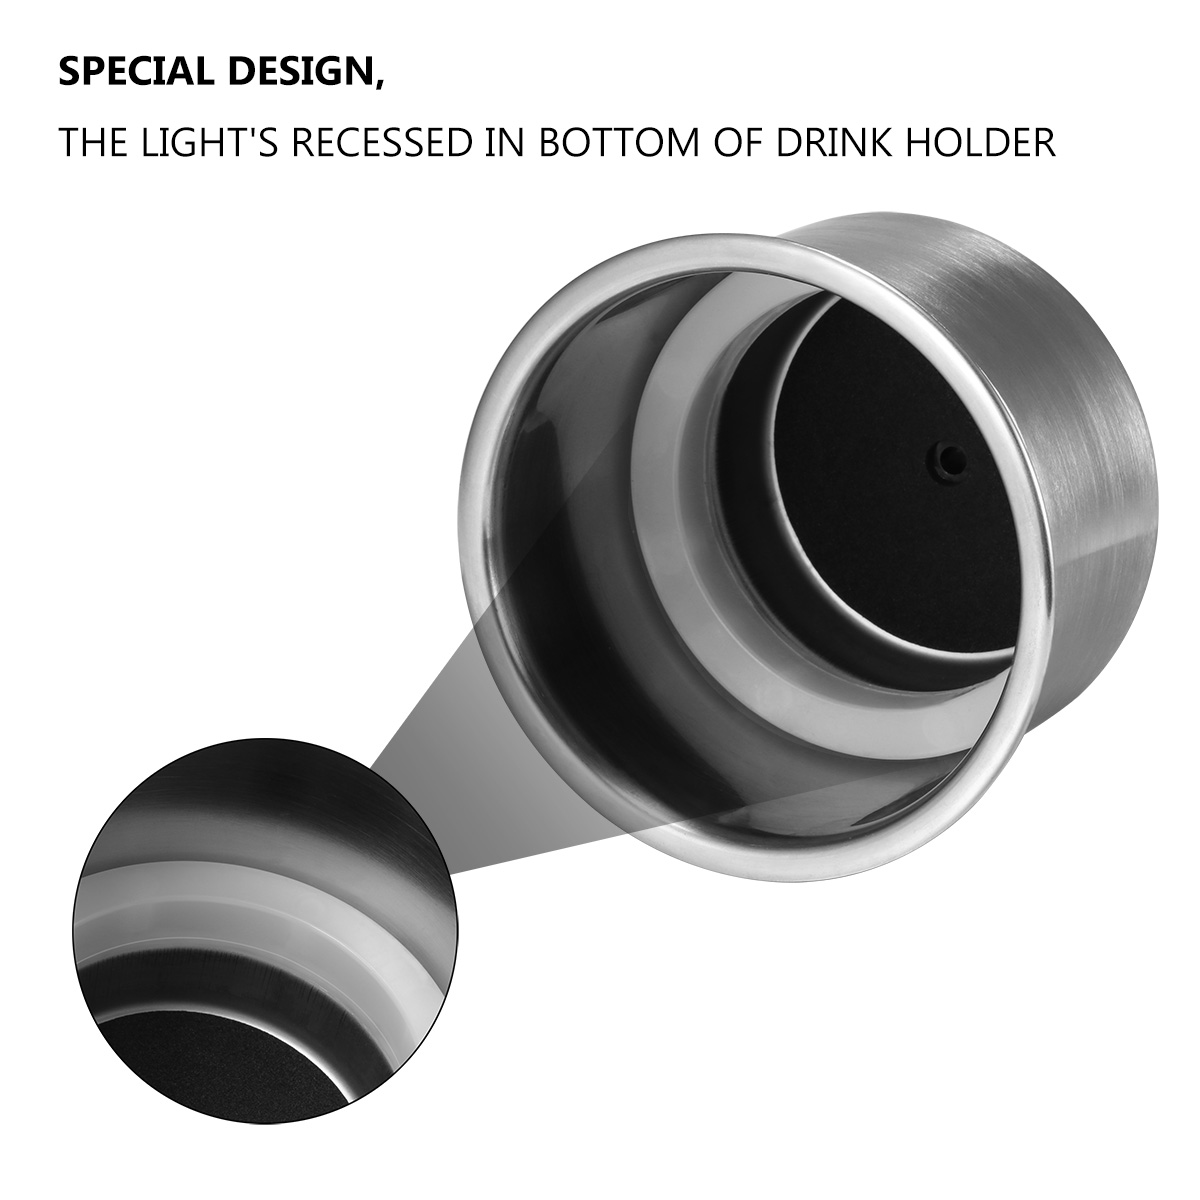 2Pcs Stainless Steel Cup Drink Holder Brushed for Marine Boat RV Camper Truck